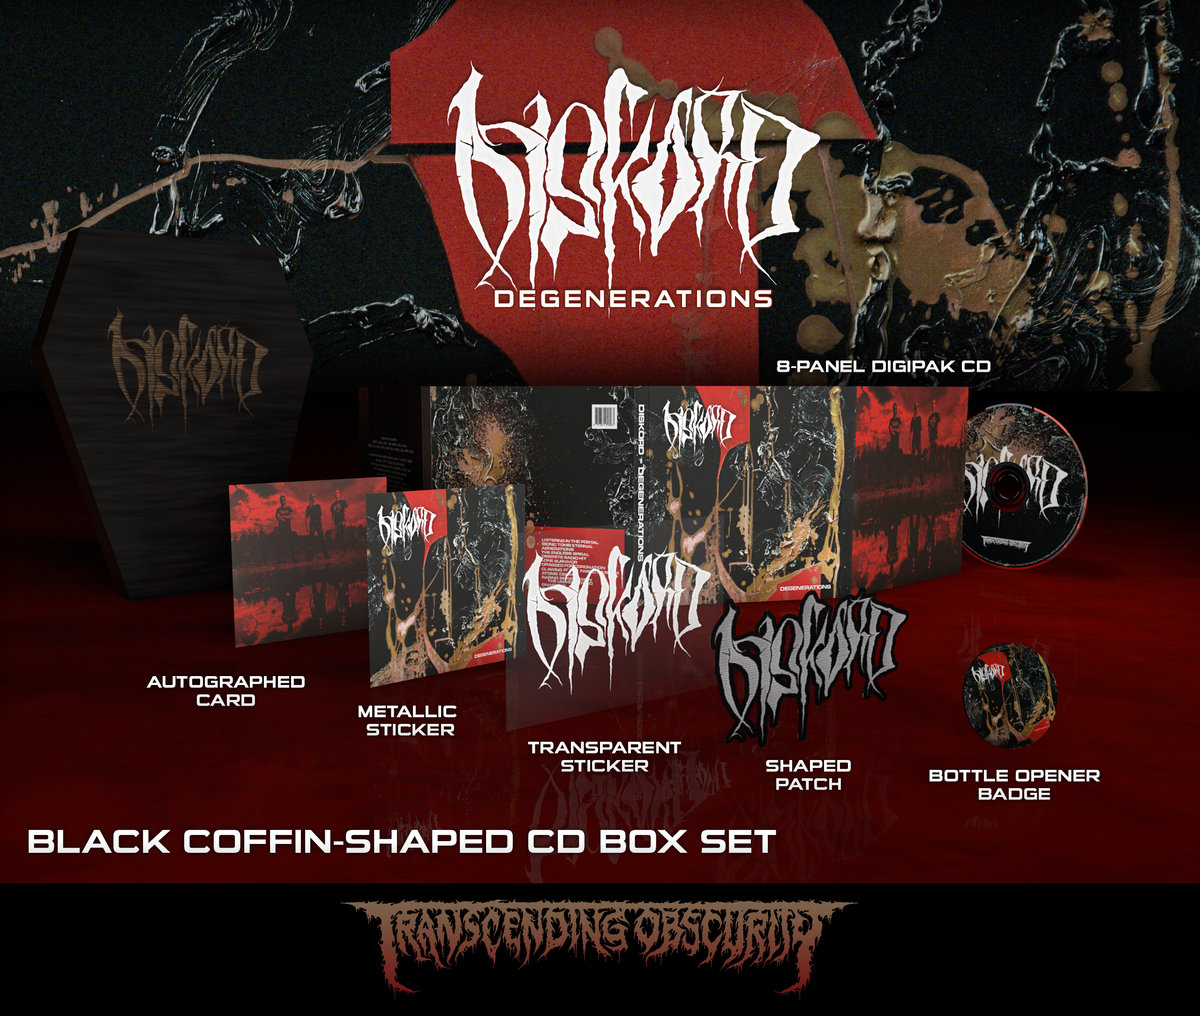 DISKORD - Degenerations Black Coffin-Shaped CD Box Set (Limited and numbered to 100)